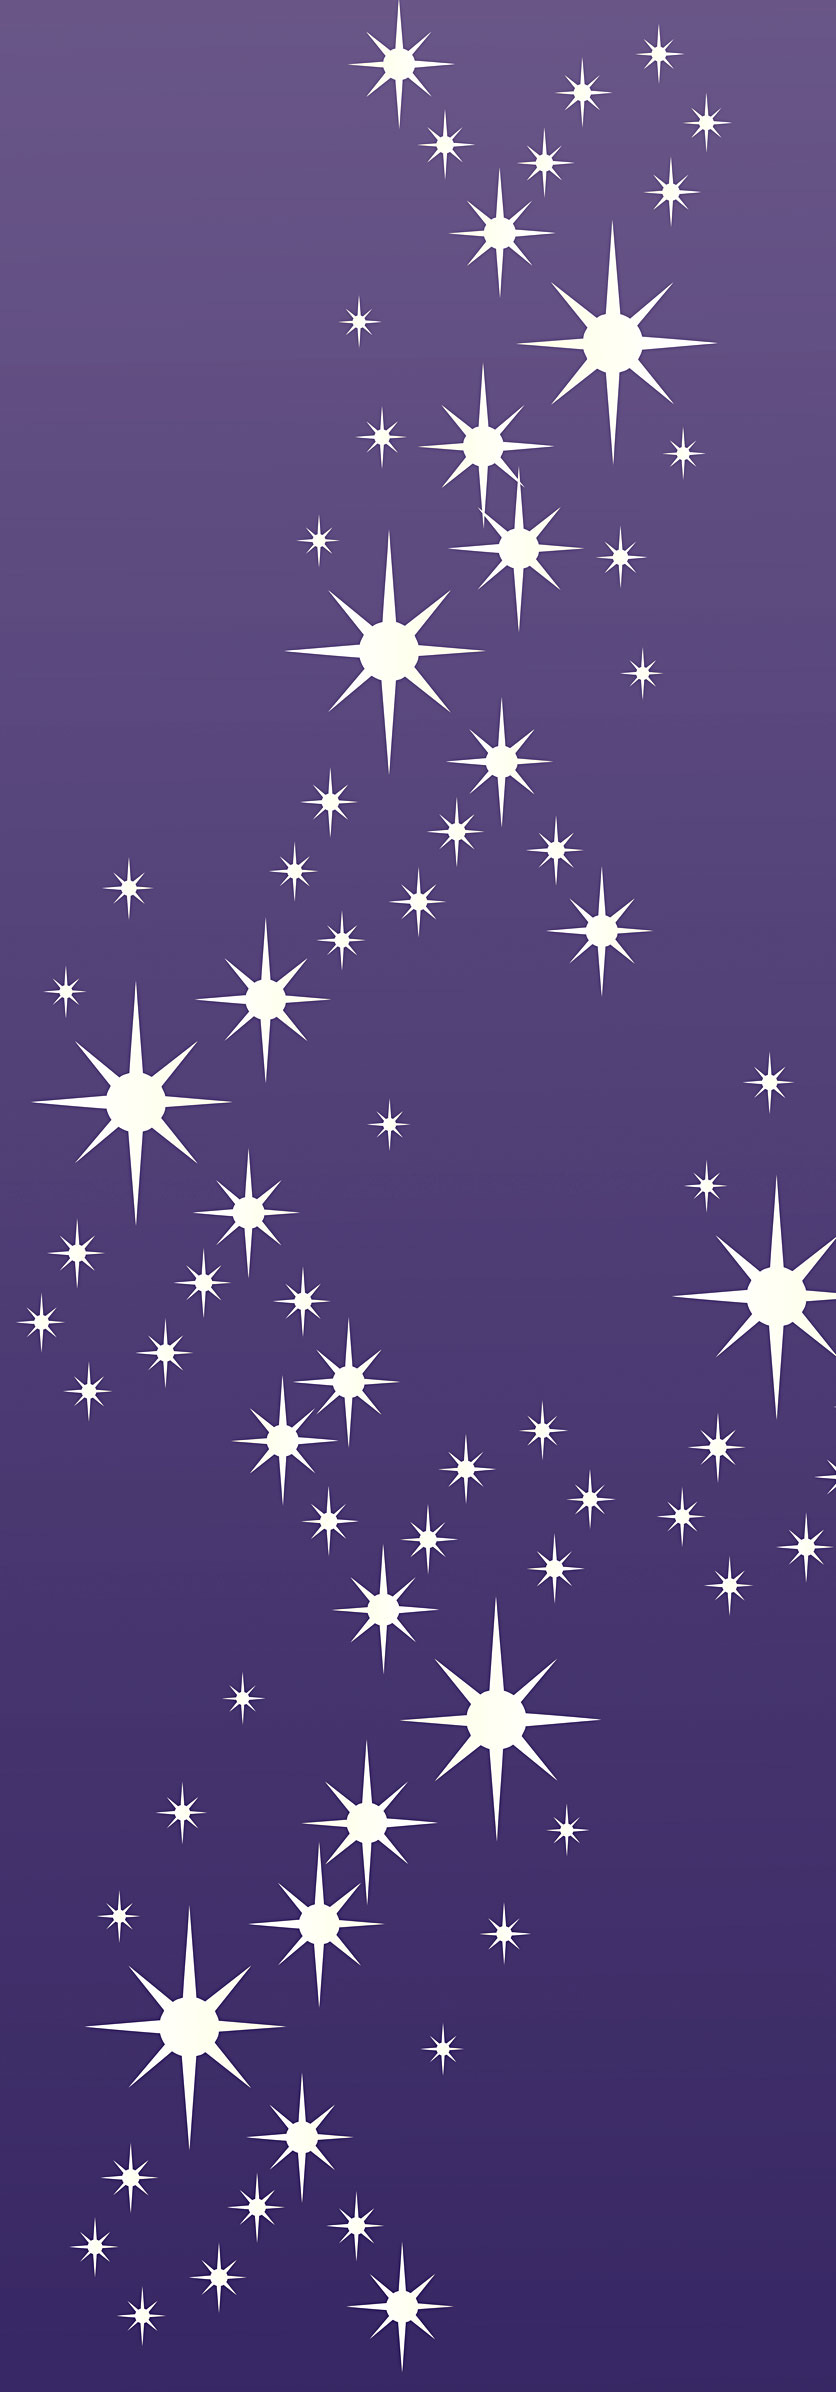 Small star cluster stencil henny donovan motif for seasonal decorating see our range of small large and oversize snowflakes stencils very fine and beautiful ice crystal designs amipublicfo Images